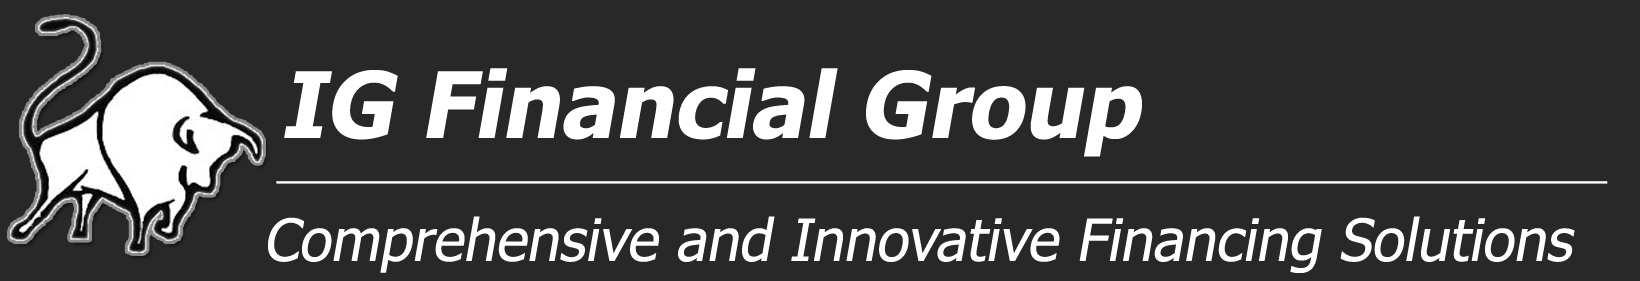 IG Financial Group Logo